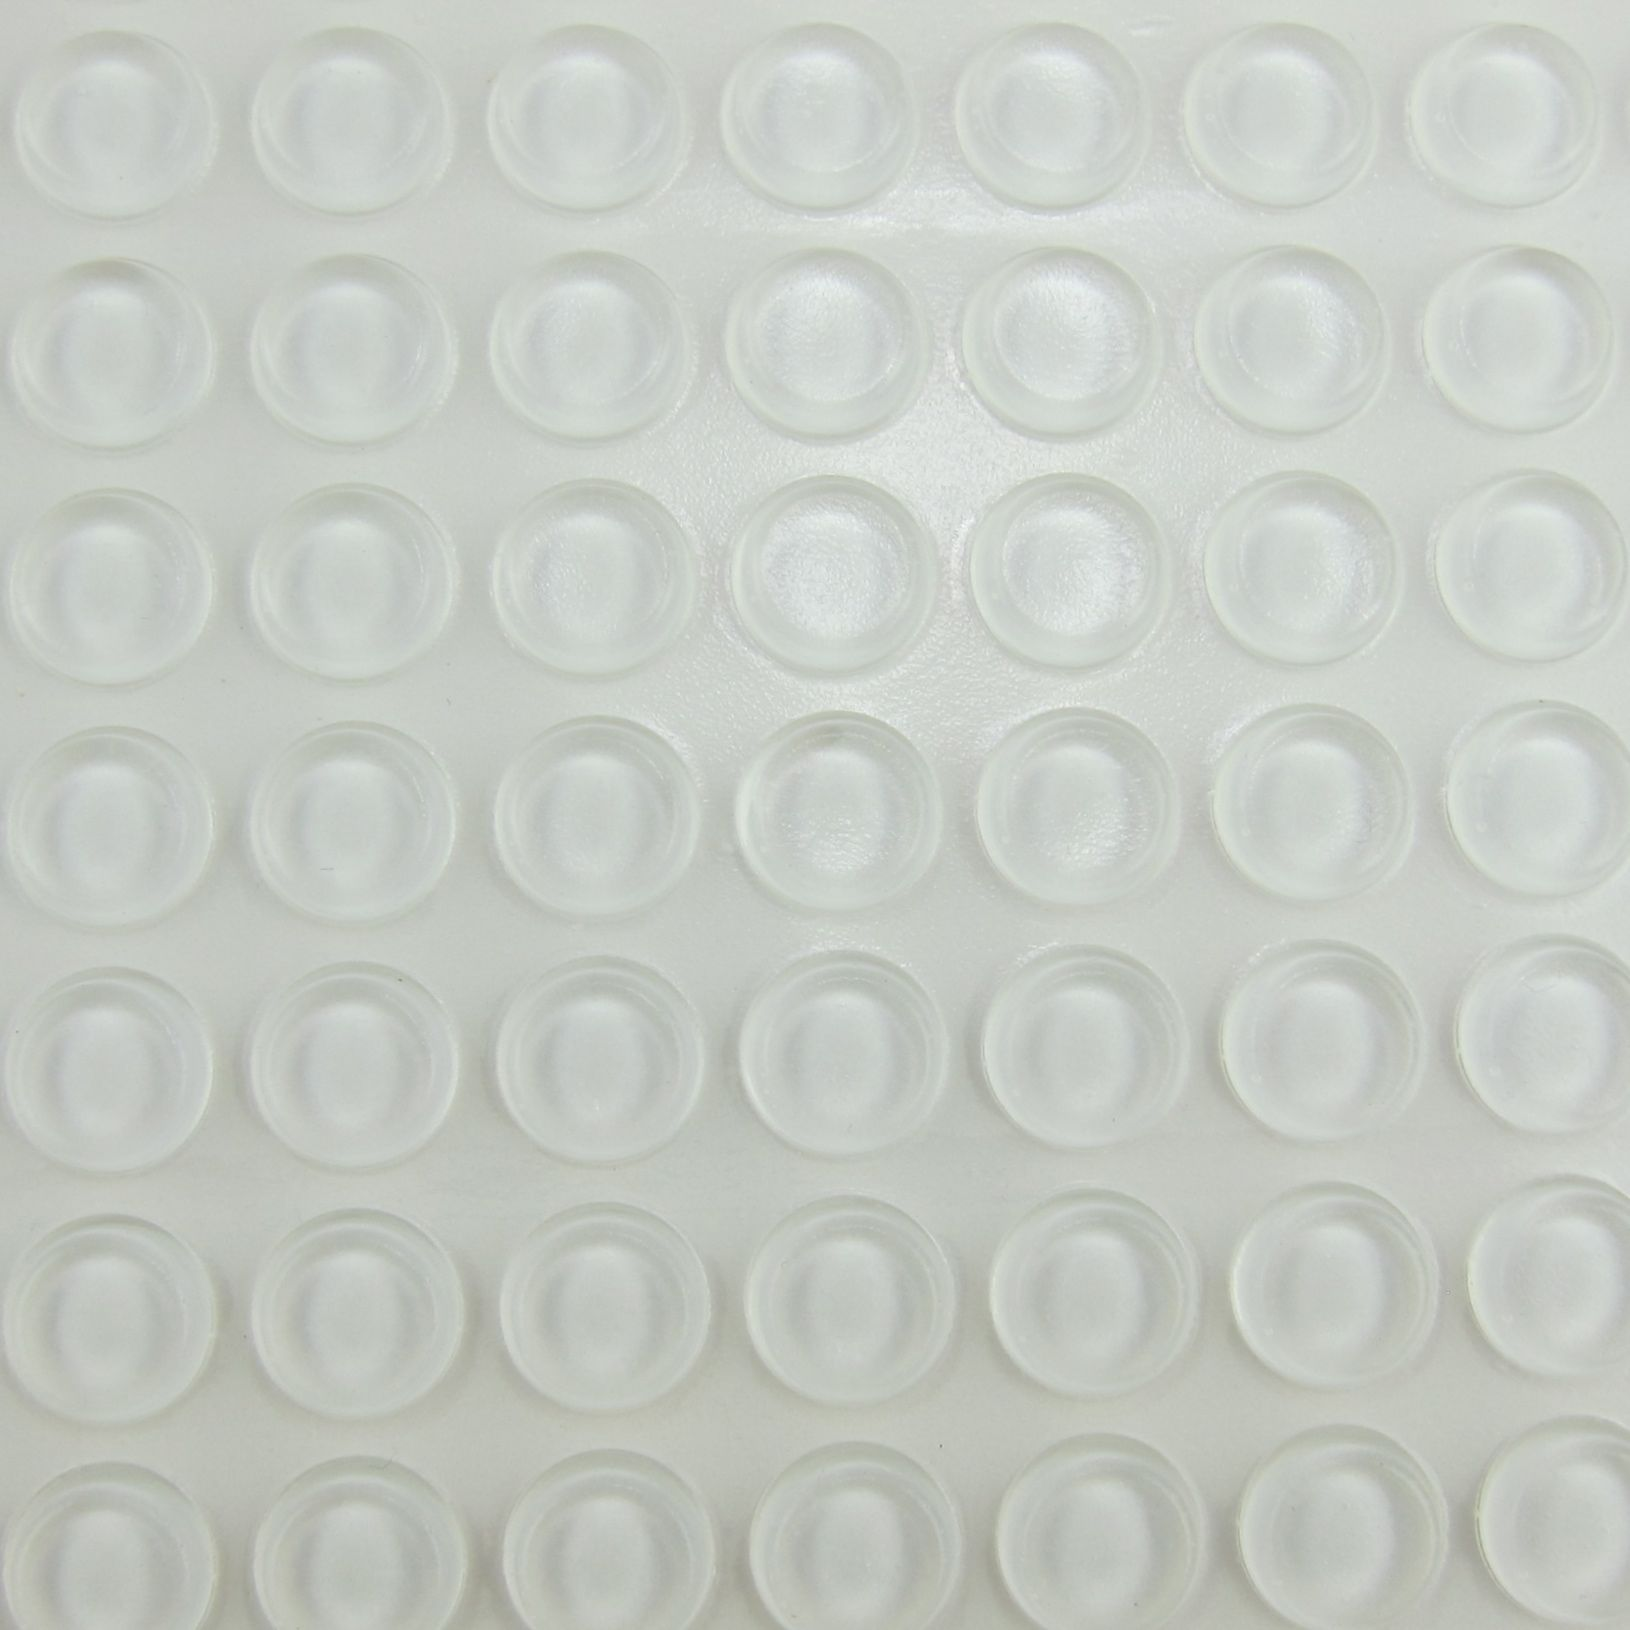 1 2 Clear Rubber Bumpers For Faceouts Sheet Of 64 Picture Frames Frame Storage Organization